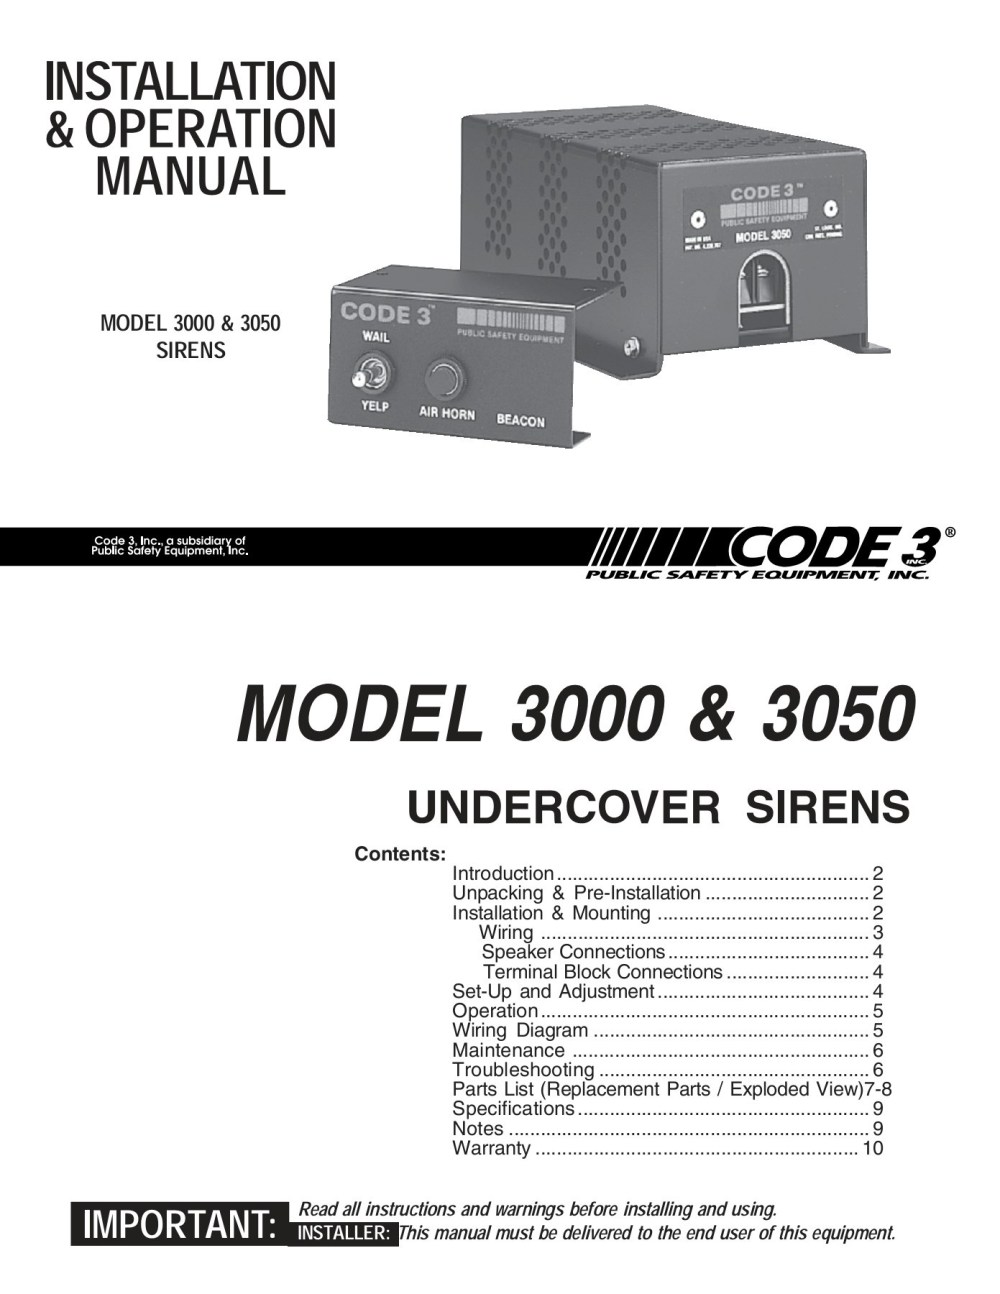 medium resolution of model 3000 3050 sirens code 3 inc is the leader in